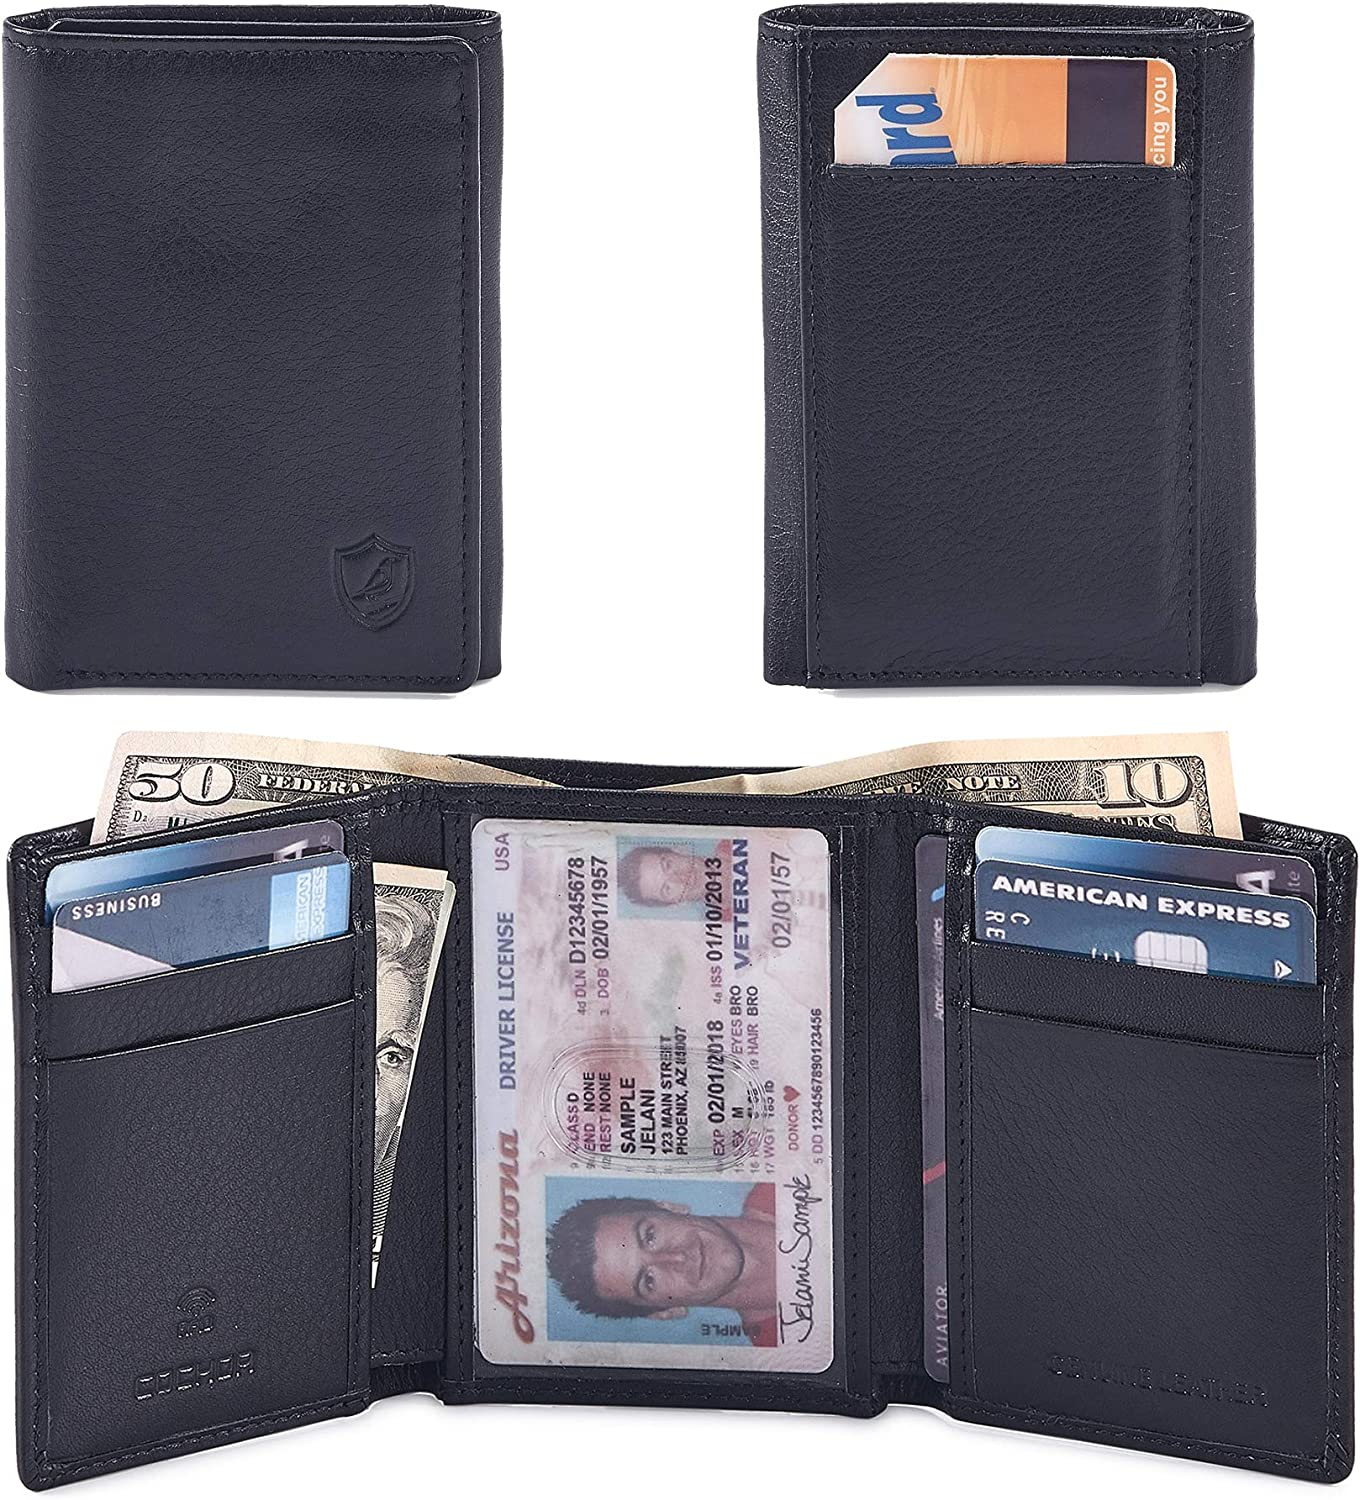 Real Leather Trifold Wallet for Men RFID Blocking Front Pocket Minimalist Slim Design With ID Window Gift Box